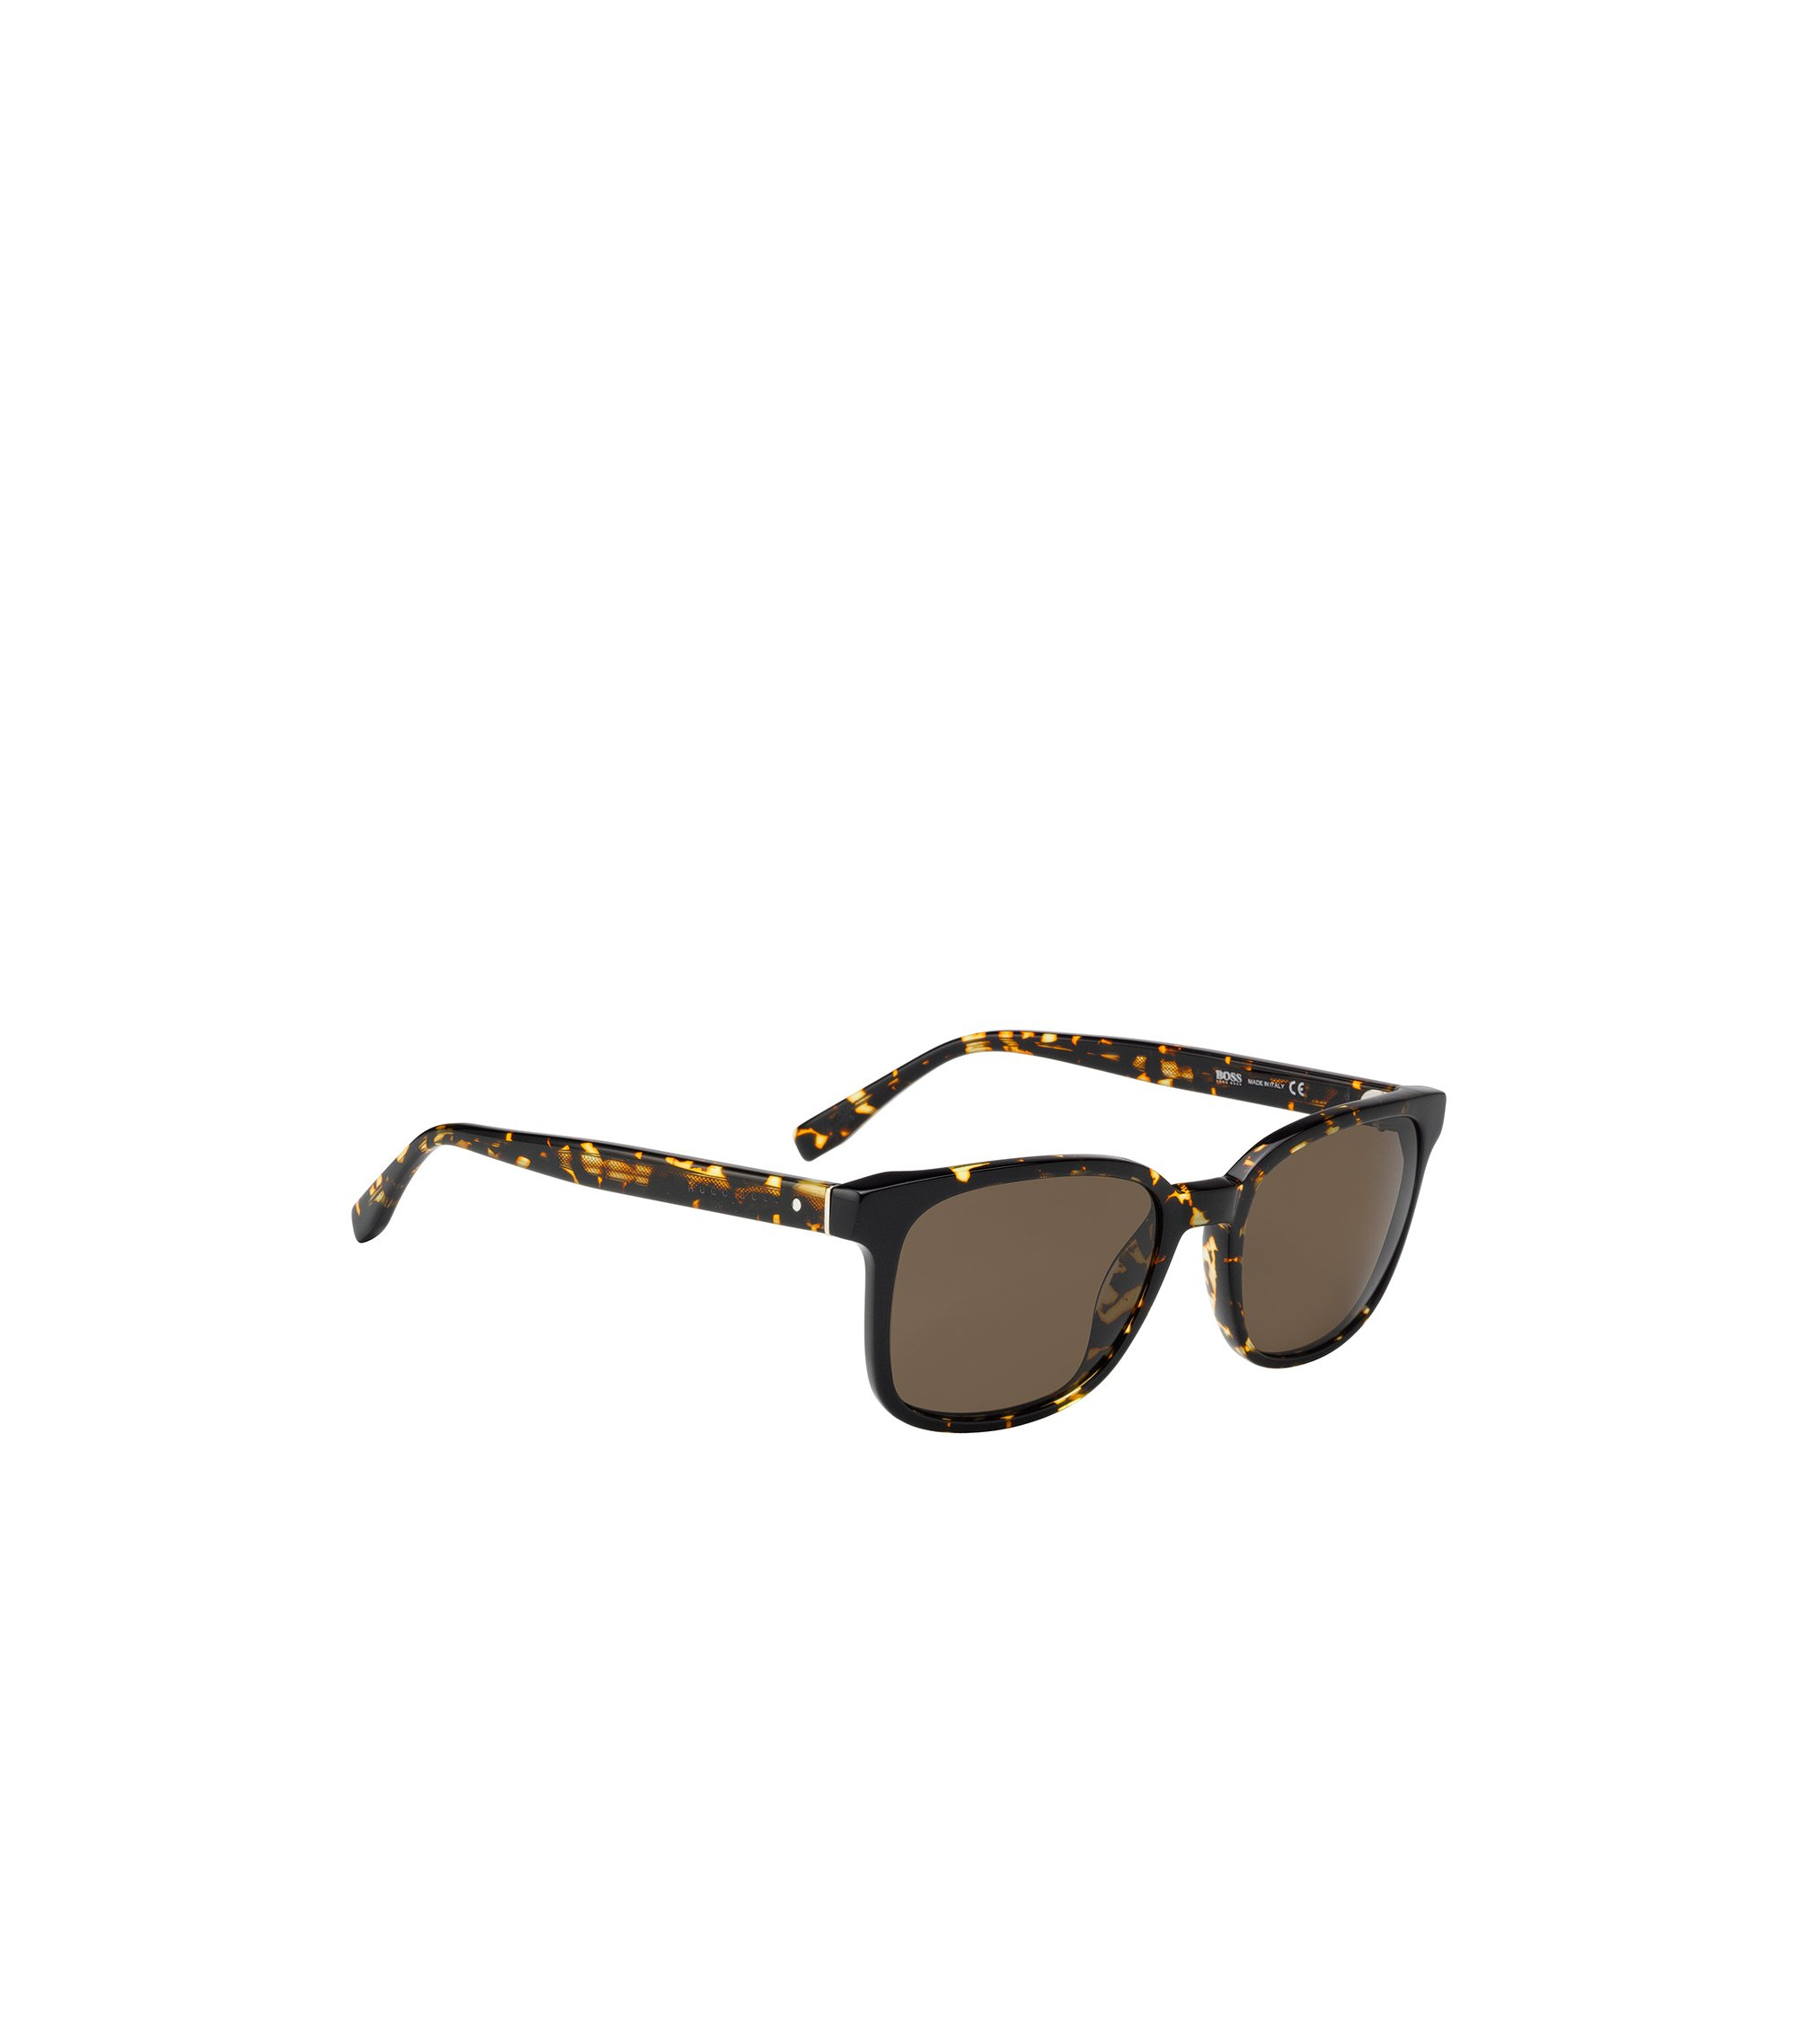 Gafas de sol con estampado Habana: 'BOSS 0802', Assorted-Pre-Pack